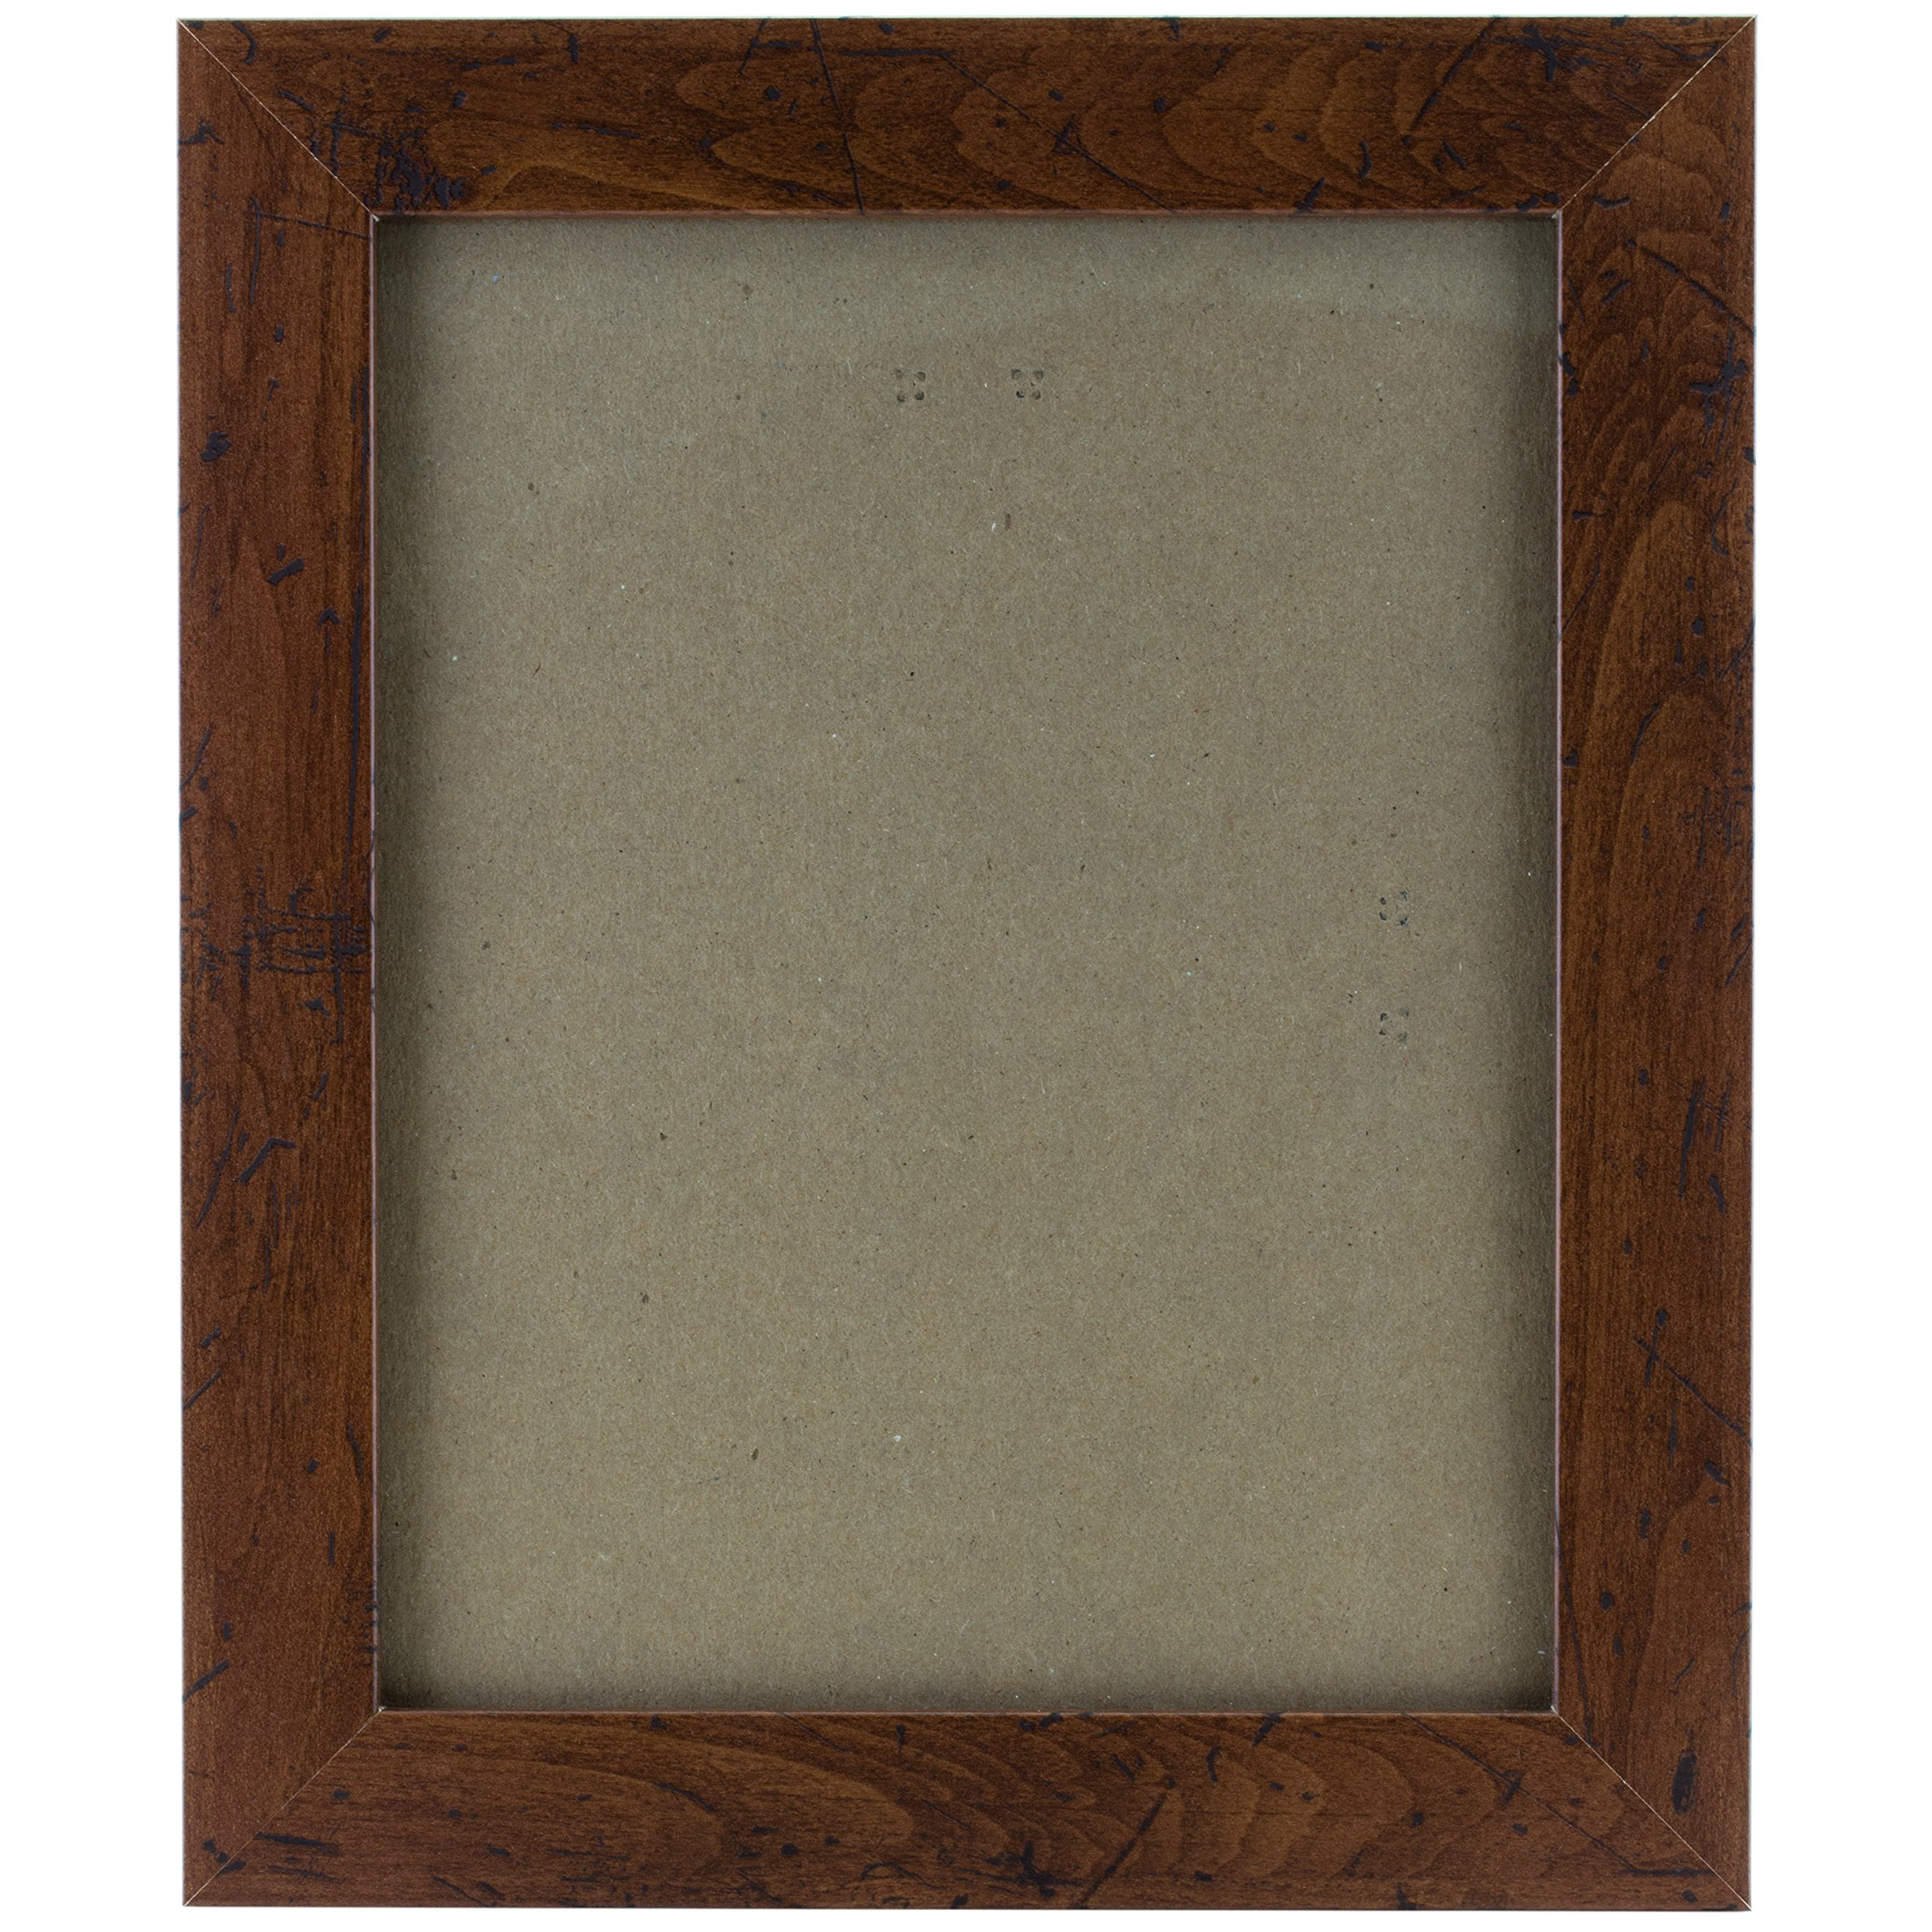 Craig Frames FM26WA1824C 1.26-Inch Wide Picture/Poster Frame in Smooth Grain Finish, 18 by 24-Inch, Dark Brown